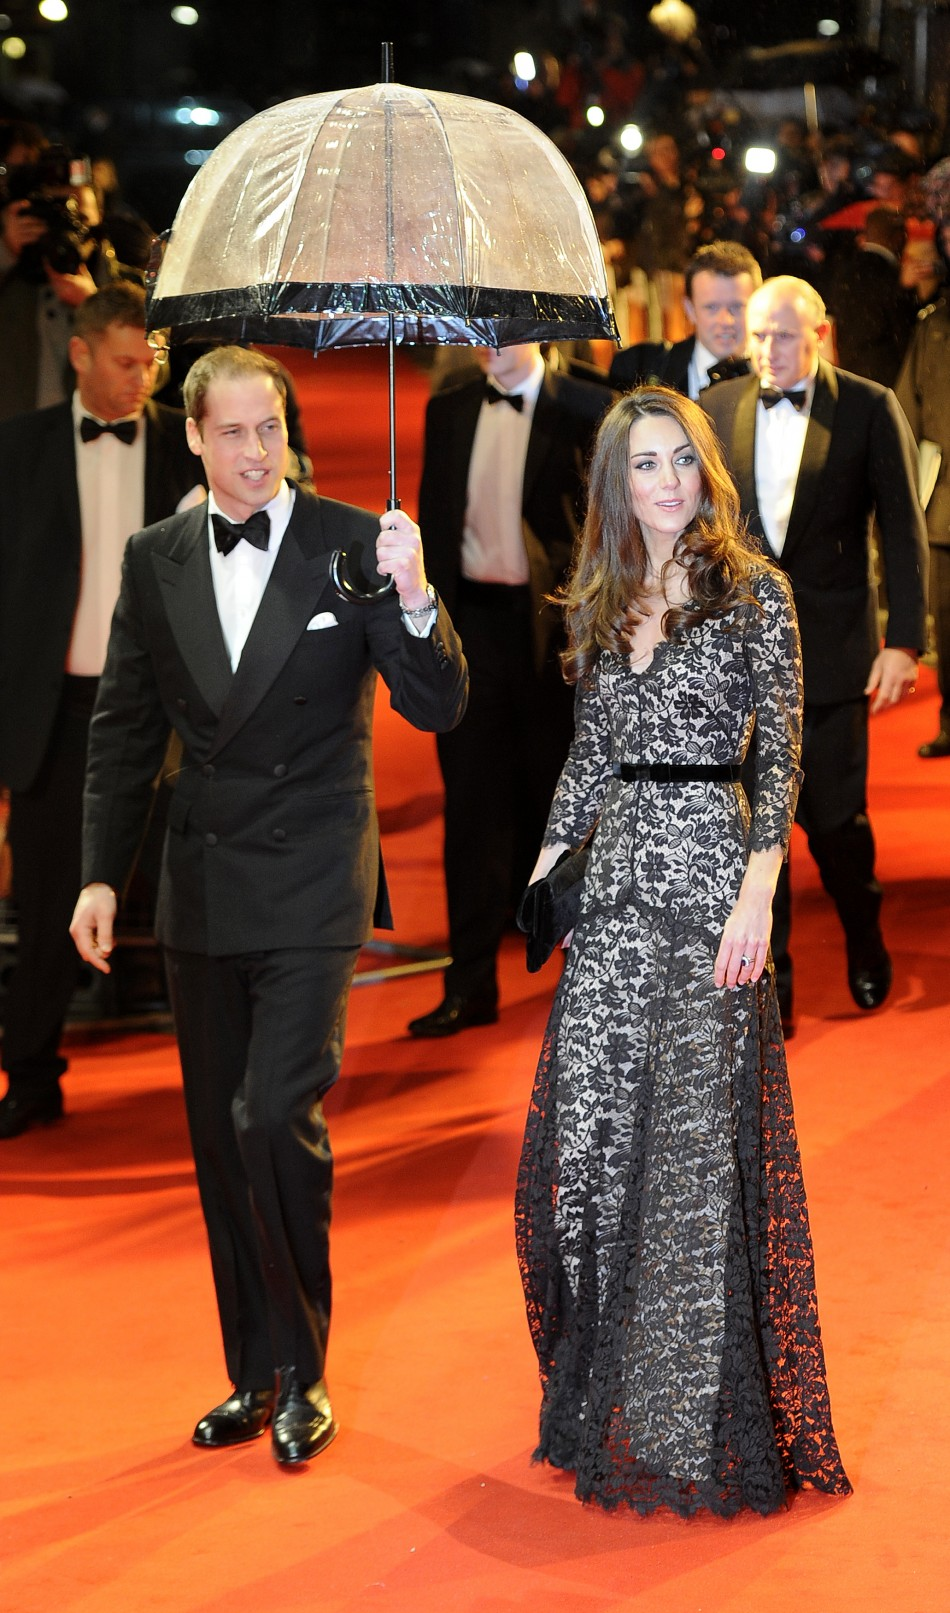 Britains Prince William arrives with Catherine, Duchess of Cambridge to the UK premiere of the film War Horse in London